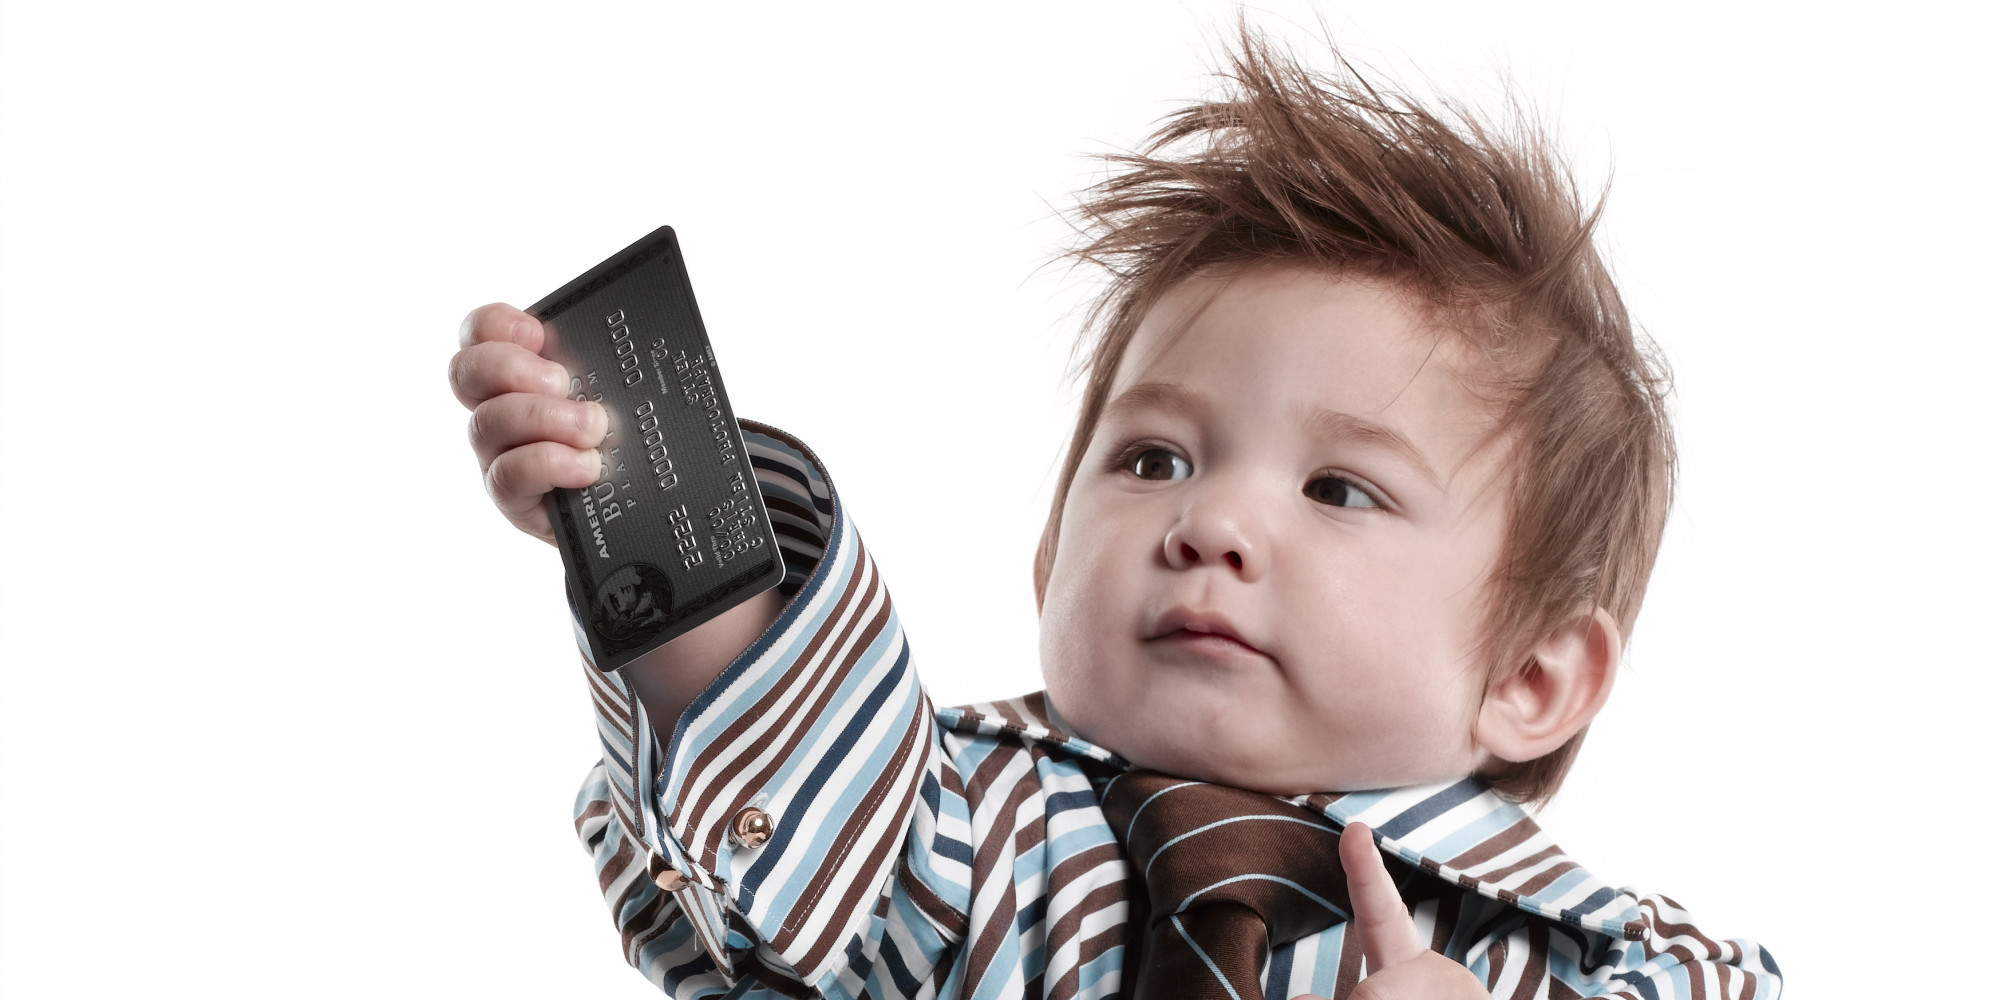 What Age Can Kids Have A Credit Card